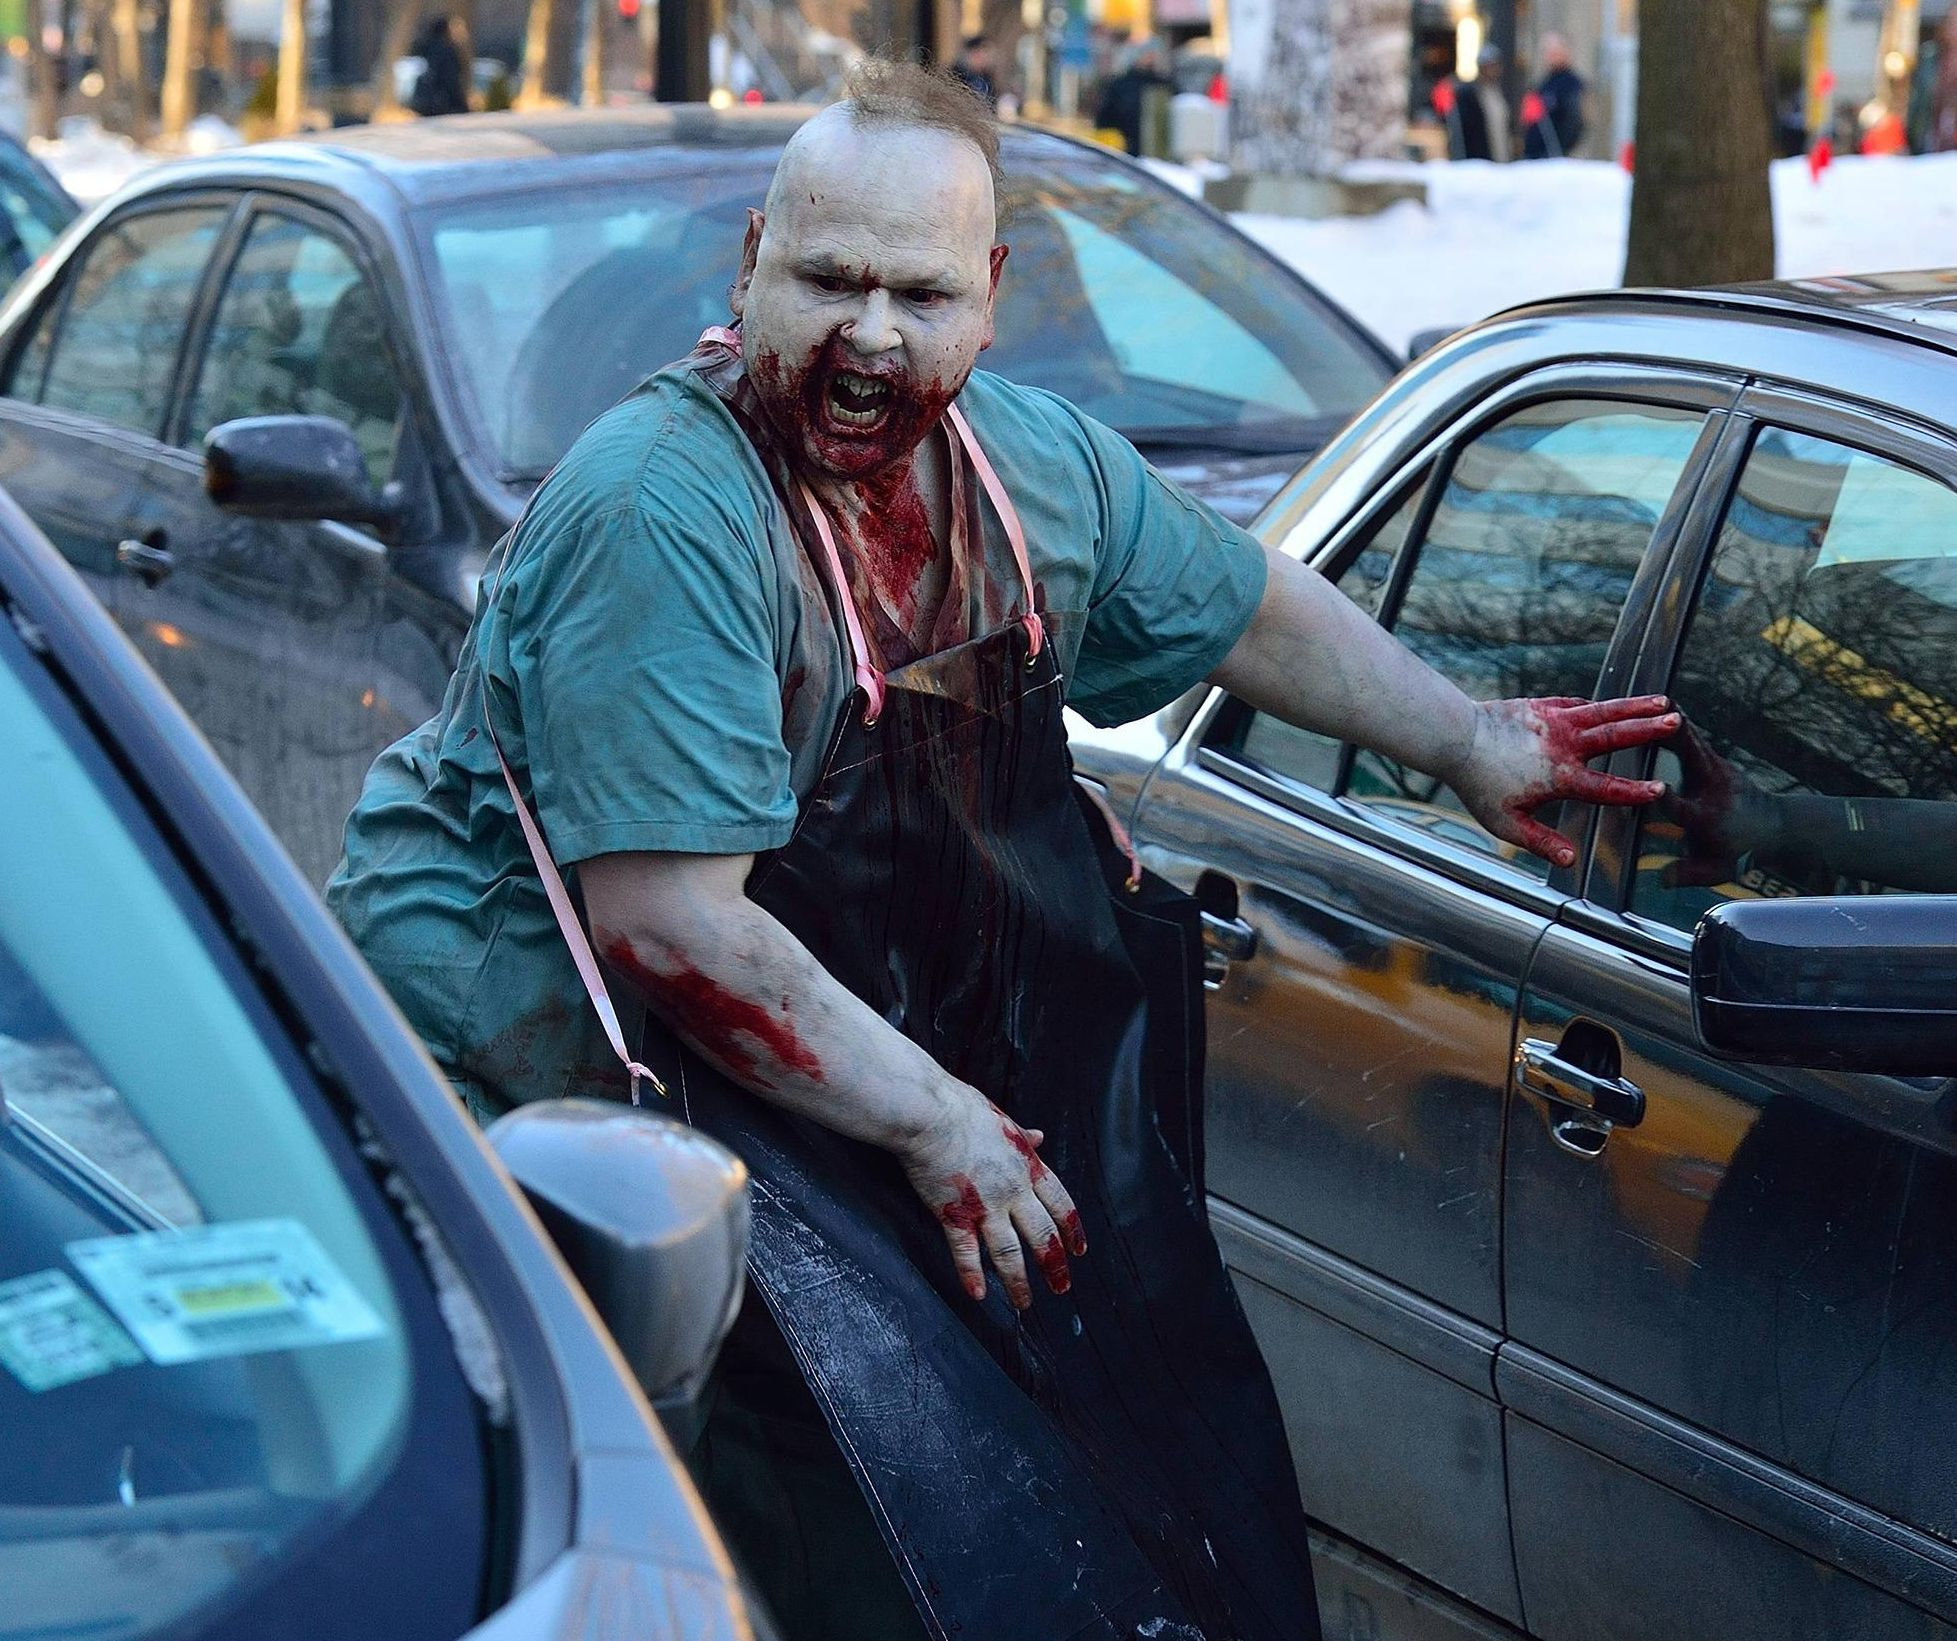 Fat vampire on the street in daylight between cars